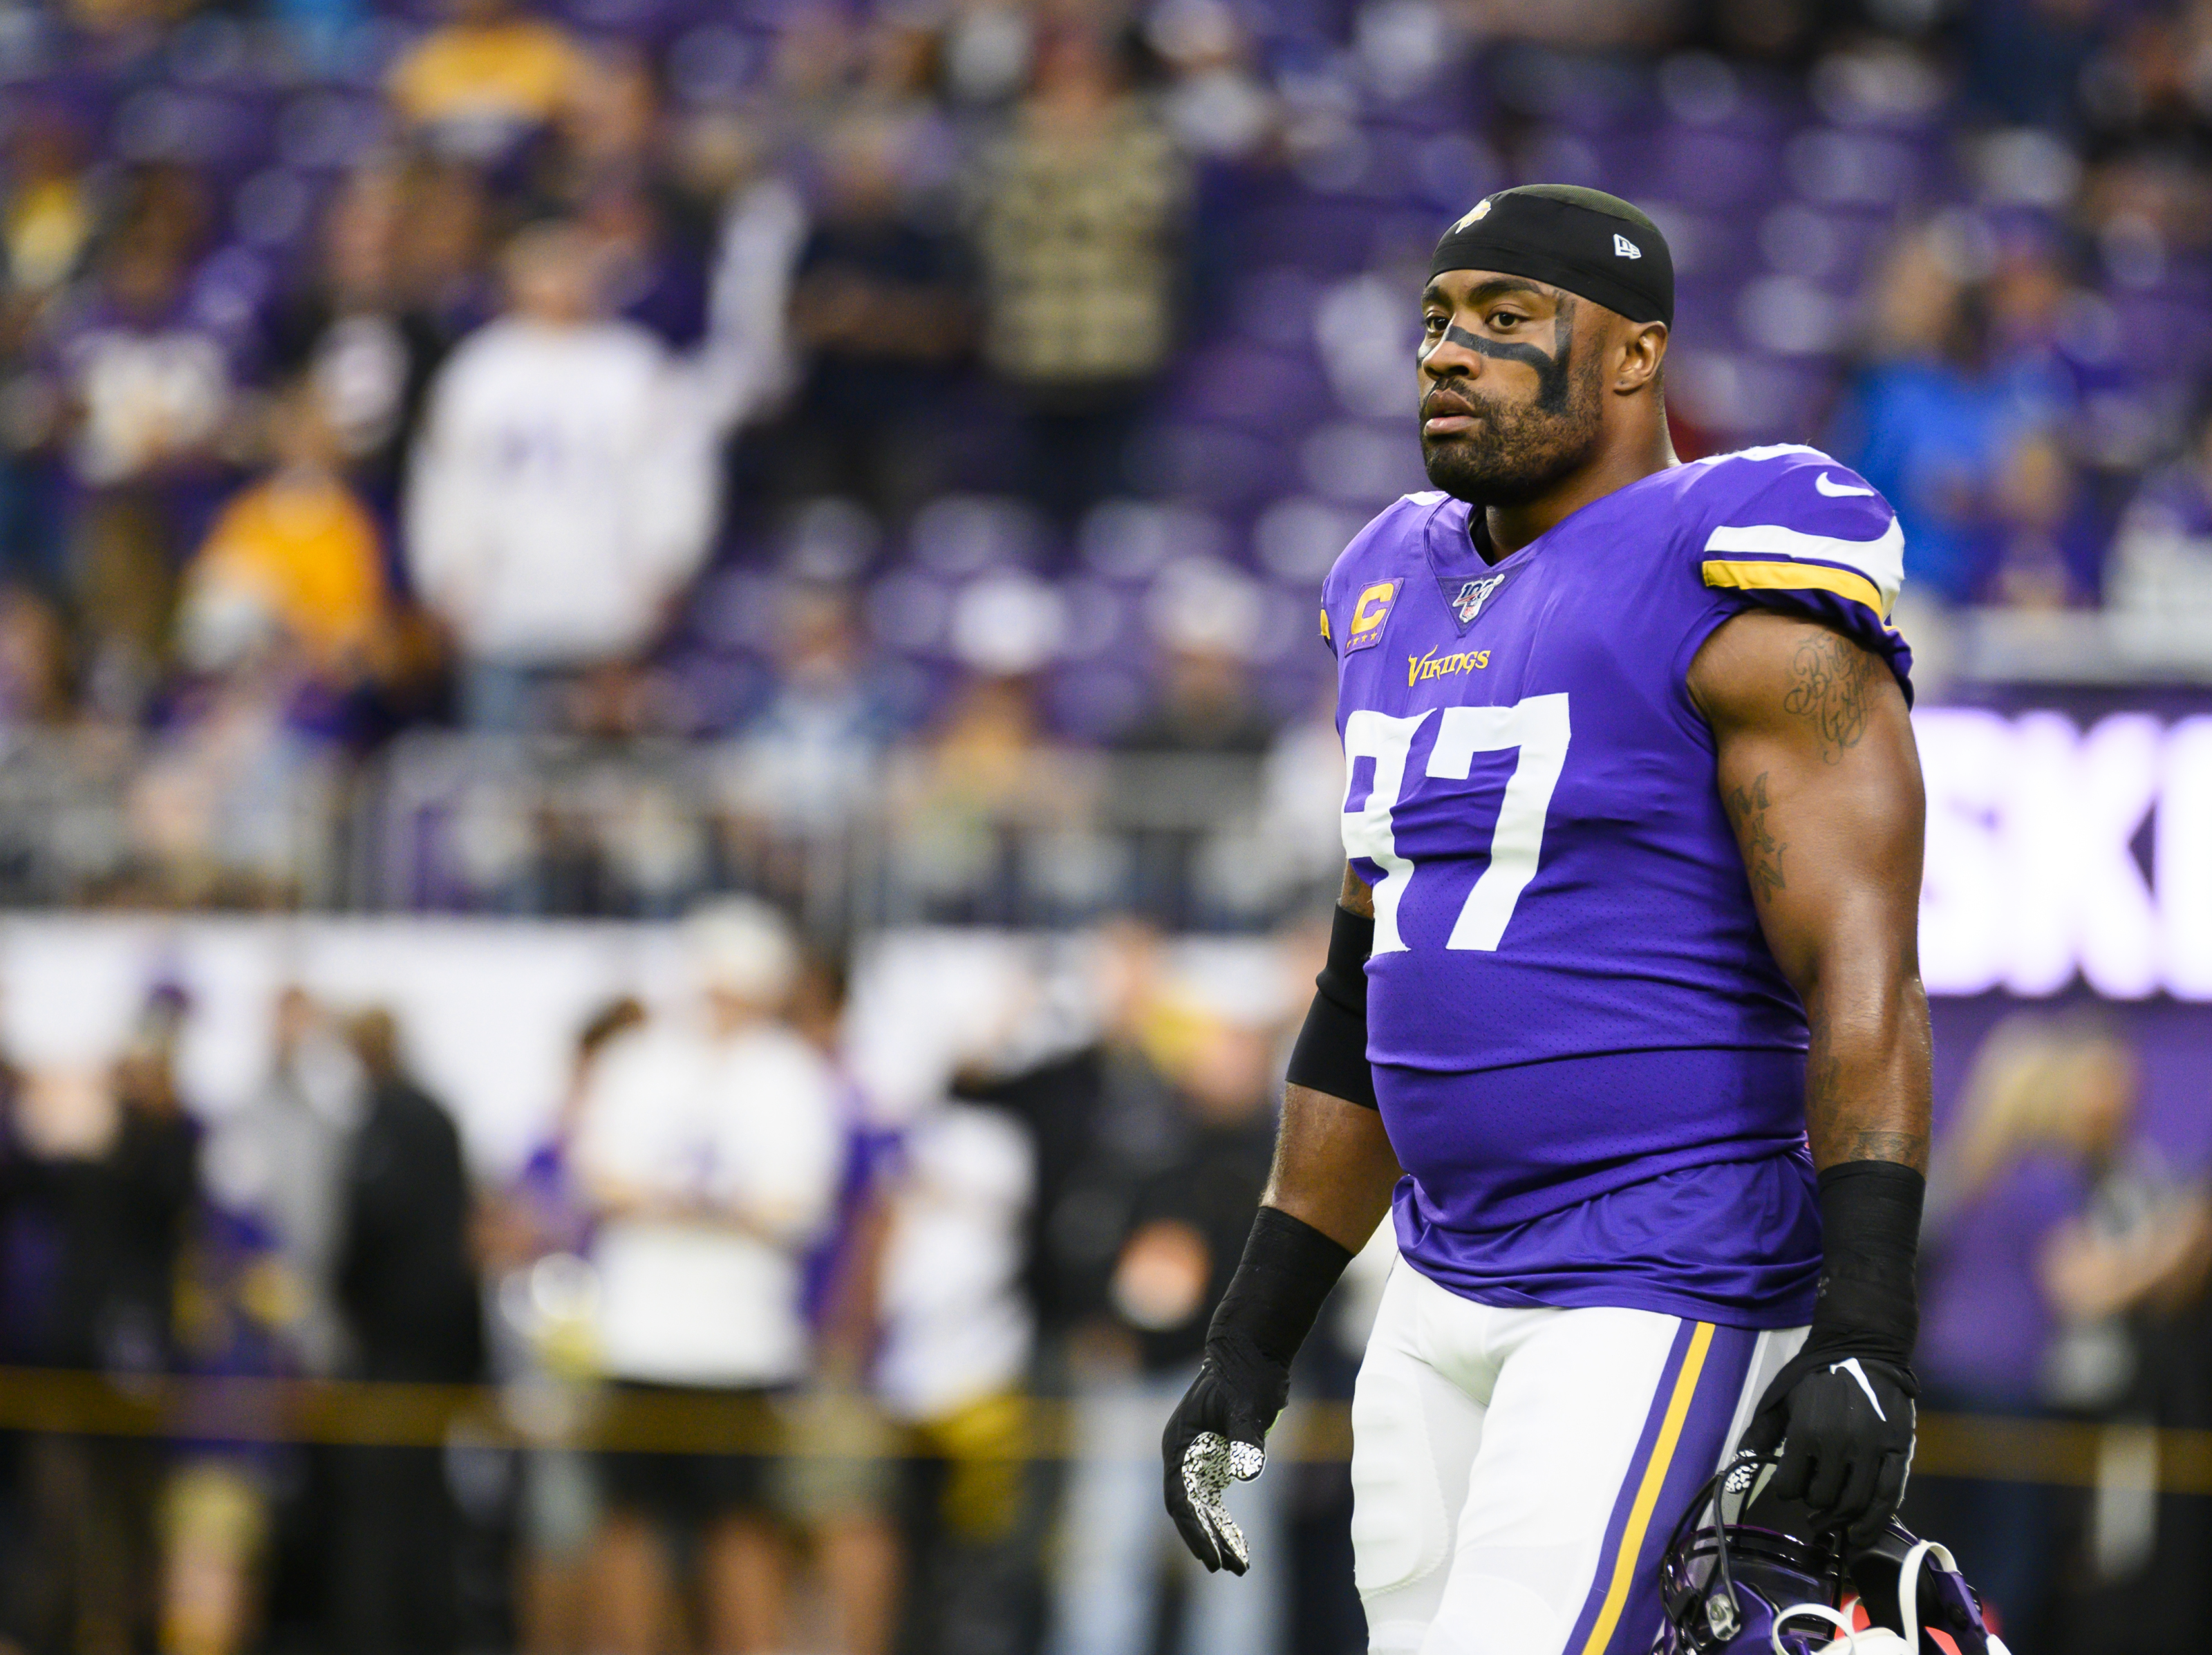 Is Everson Griffen returning to the Vikings still a possibility?